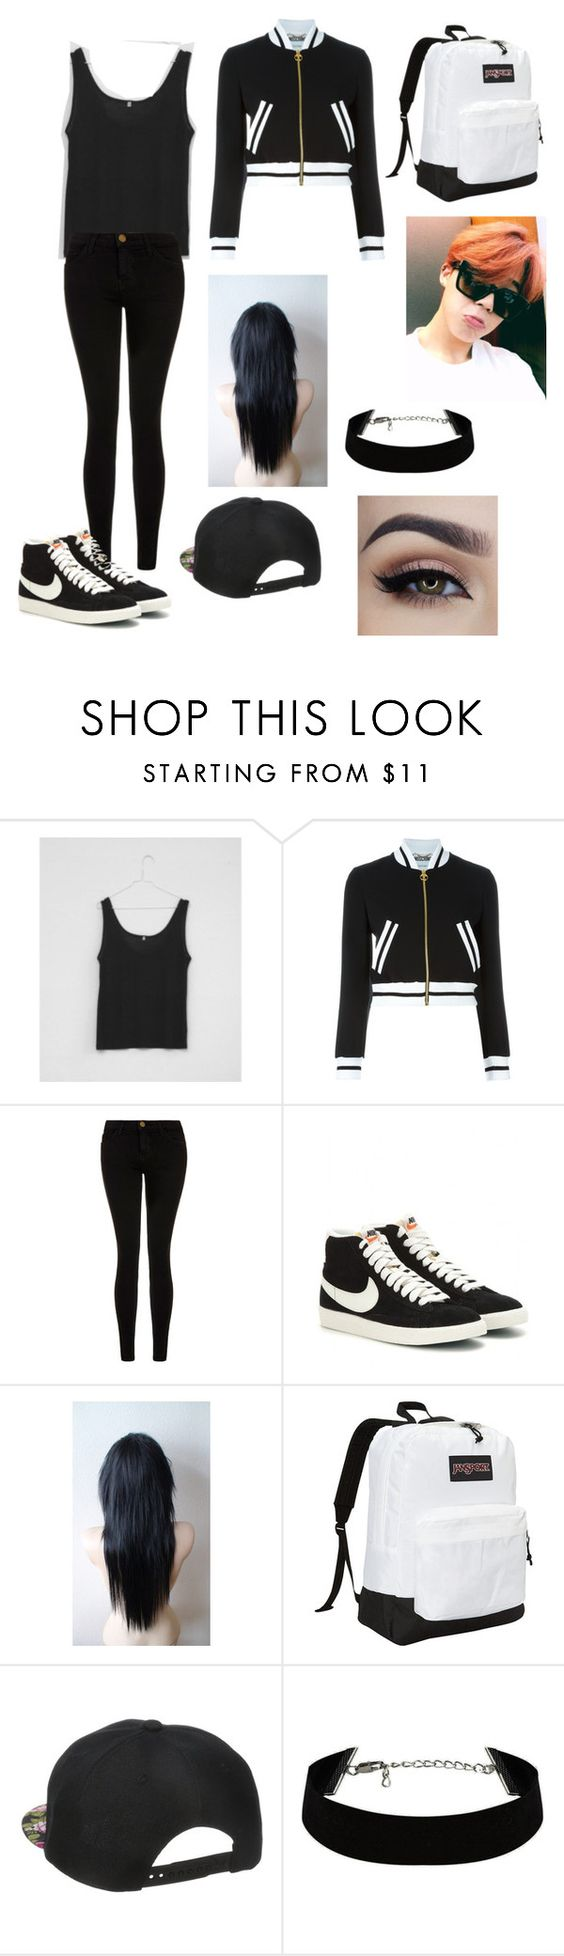 """""""Jimin girl version"""" by bts-trash ❤ liked on Polyvore featuring Base Range, Moschino, Current/Elliott, NIKE and JanSport"""